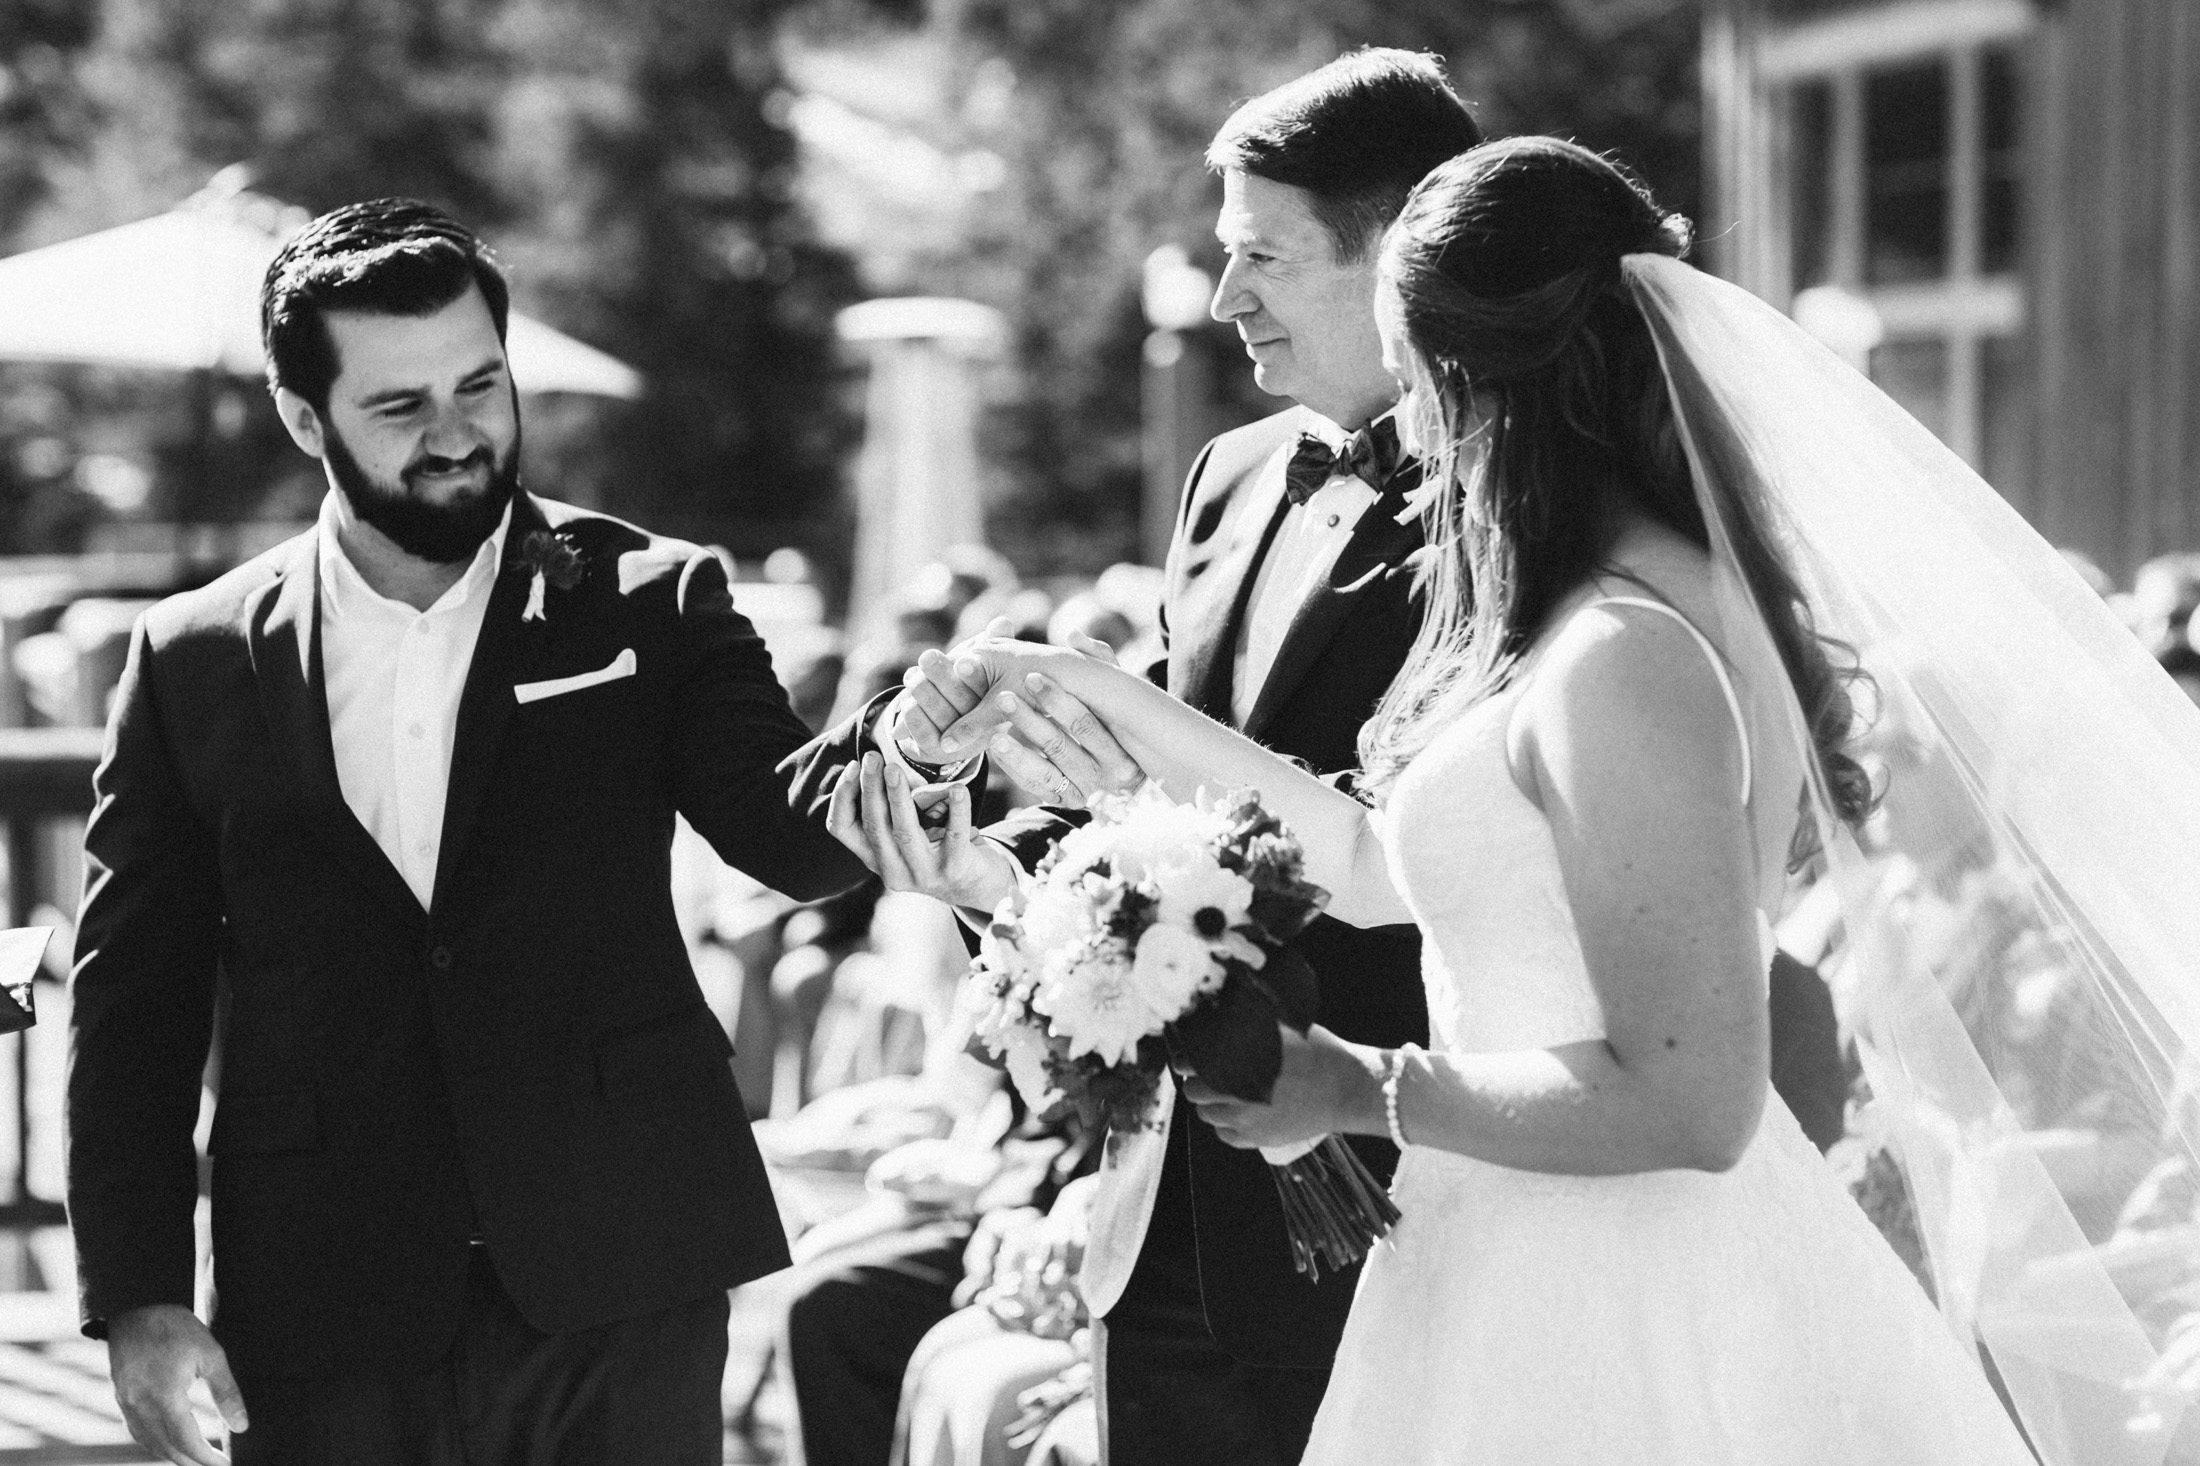 Black and white photo of father handing his daughter's hand to groom.